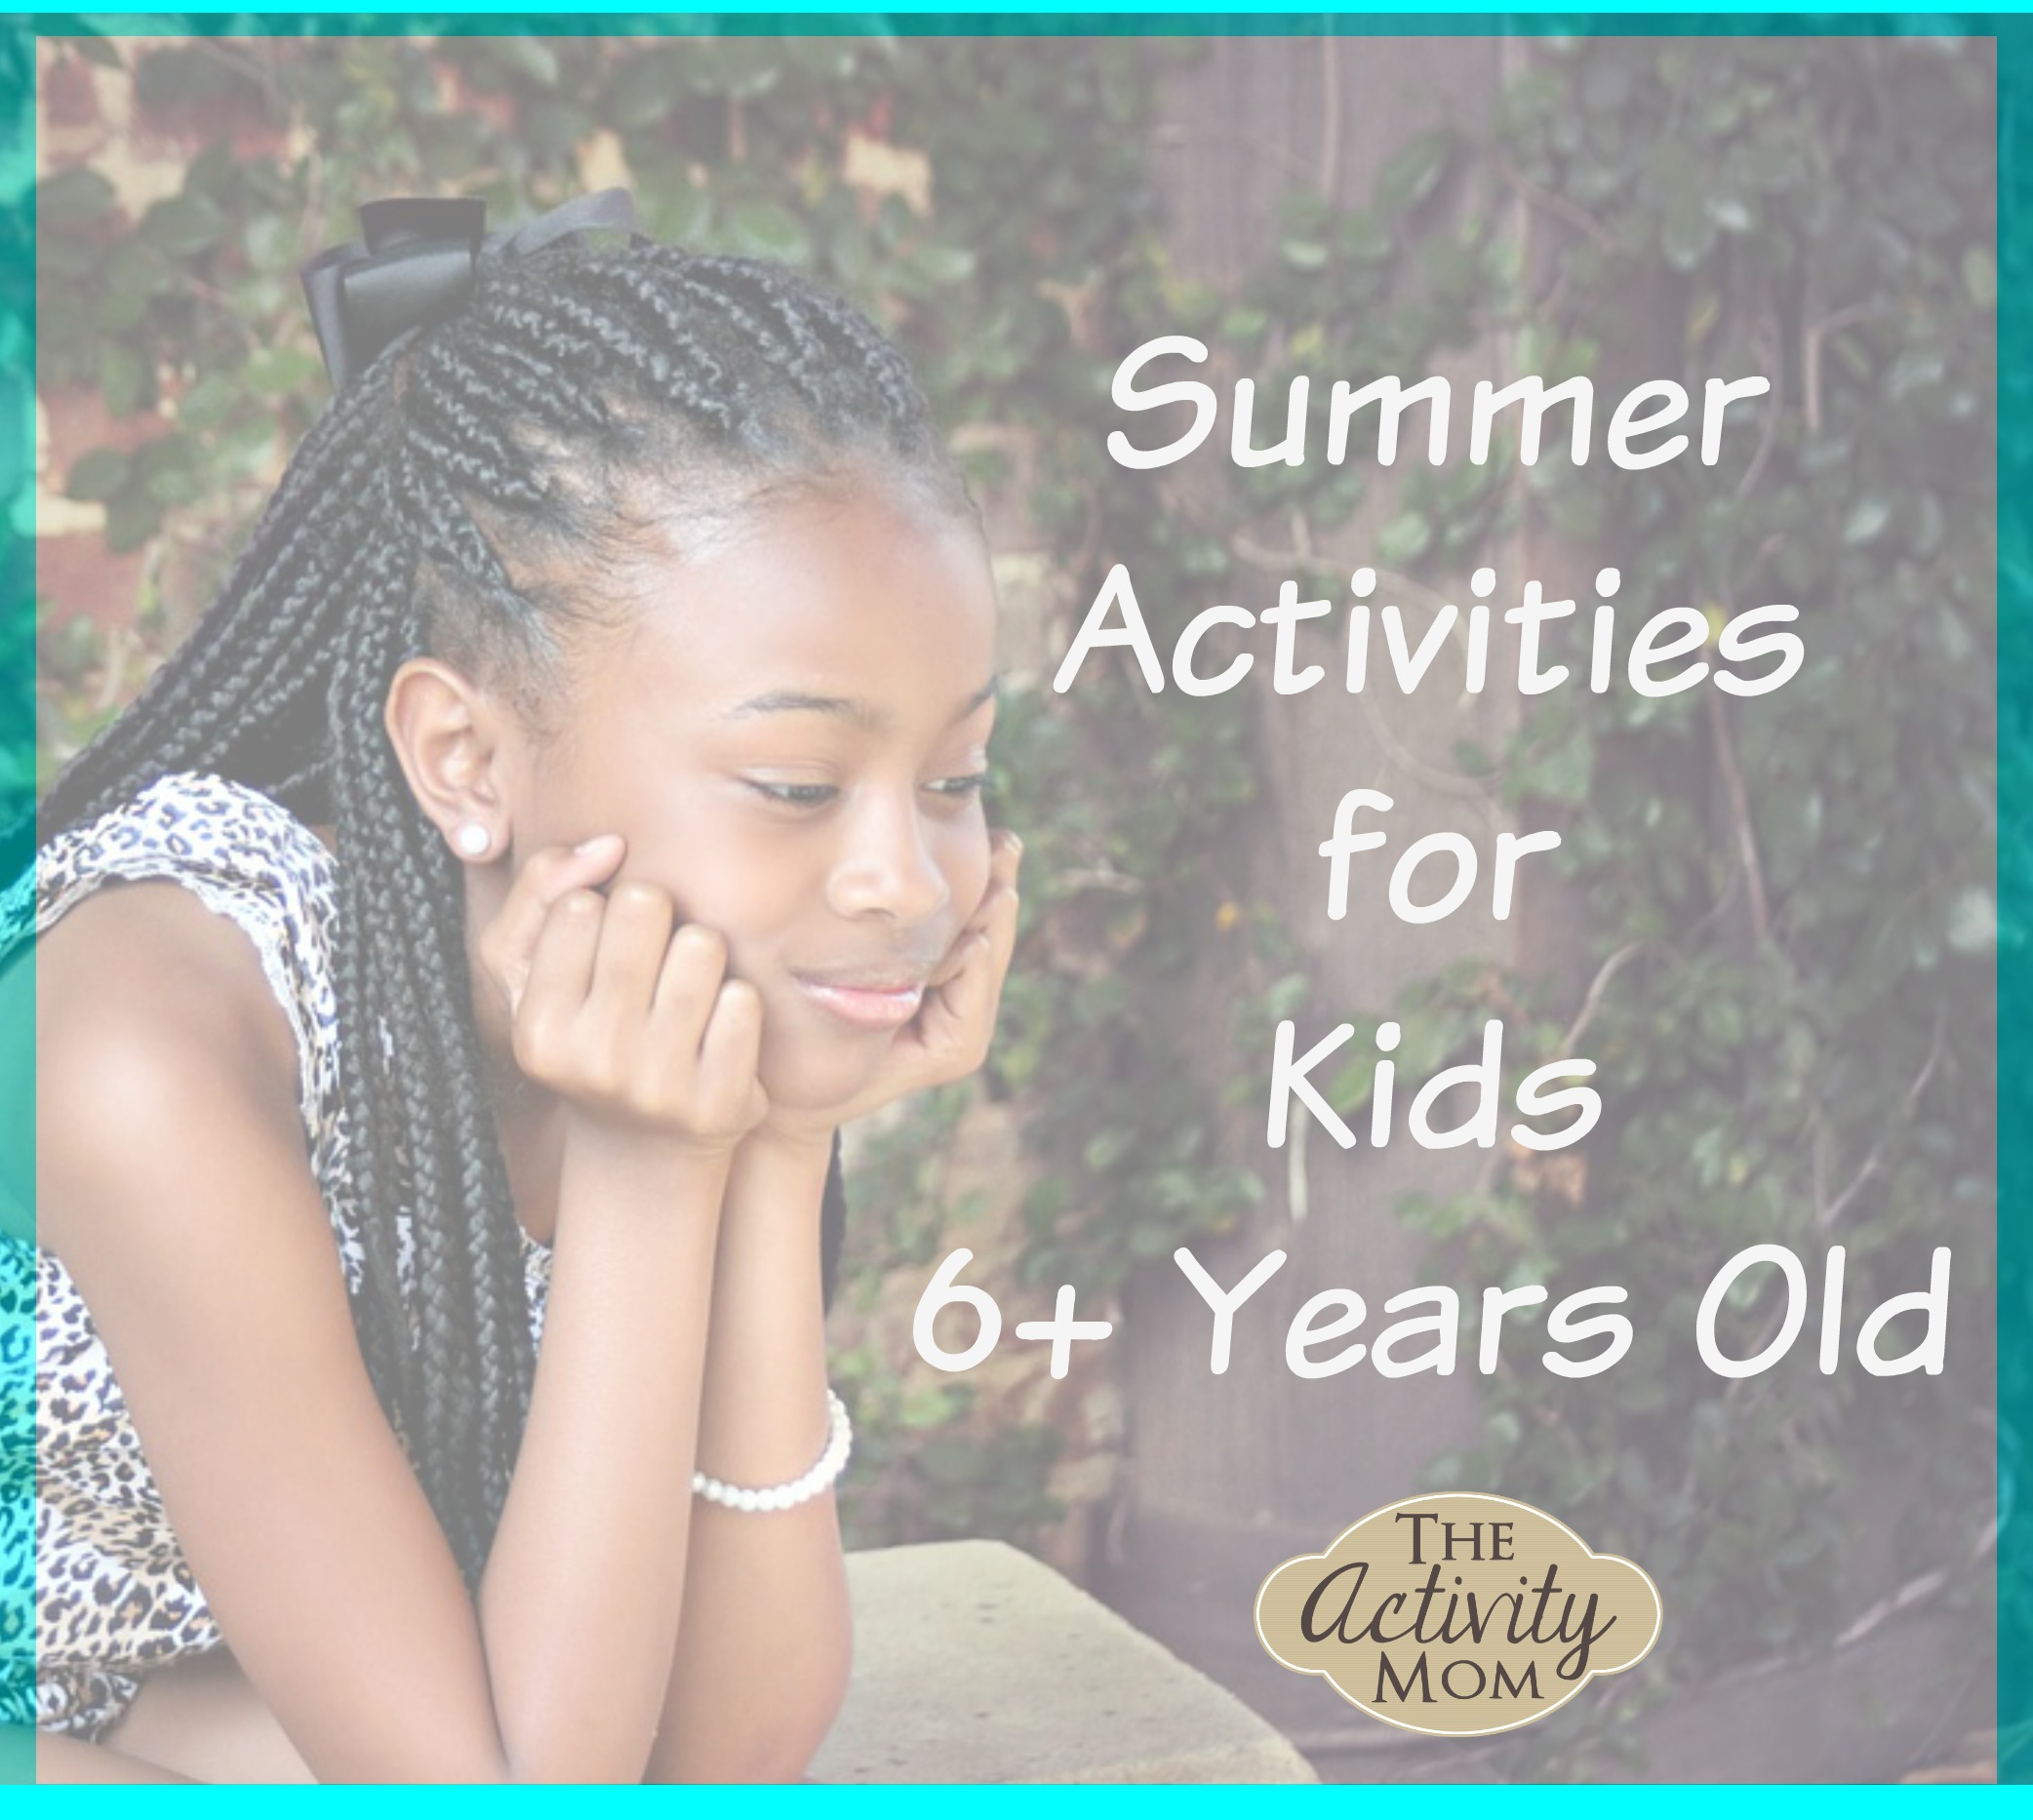 Summer Activities for Ages 6+